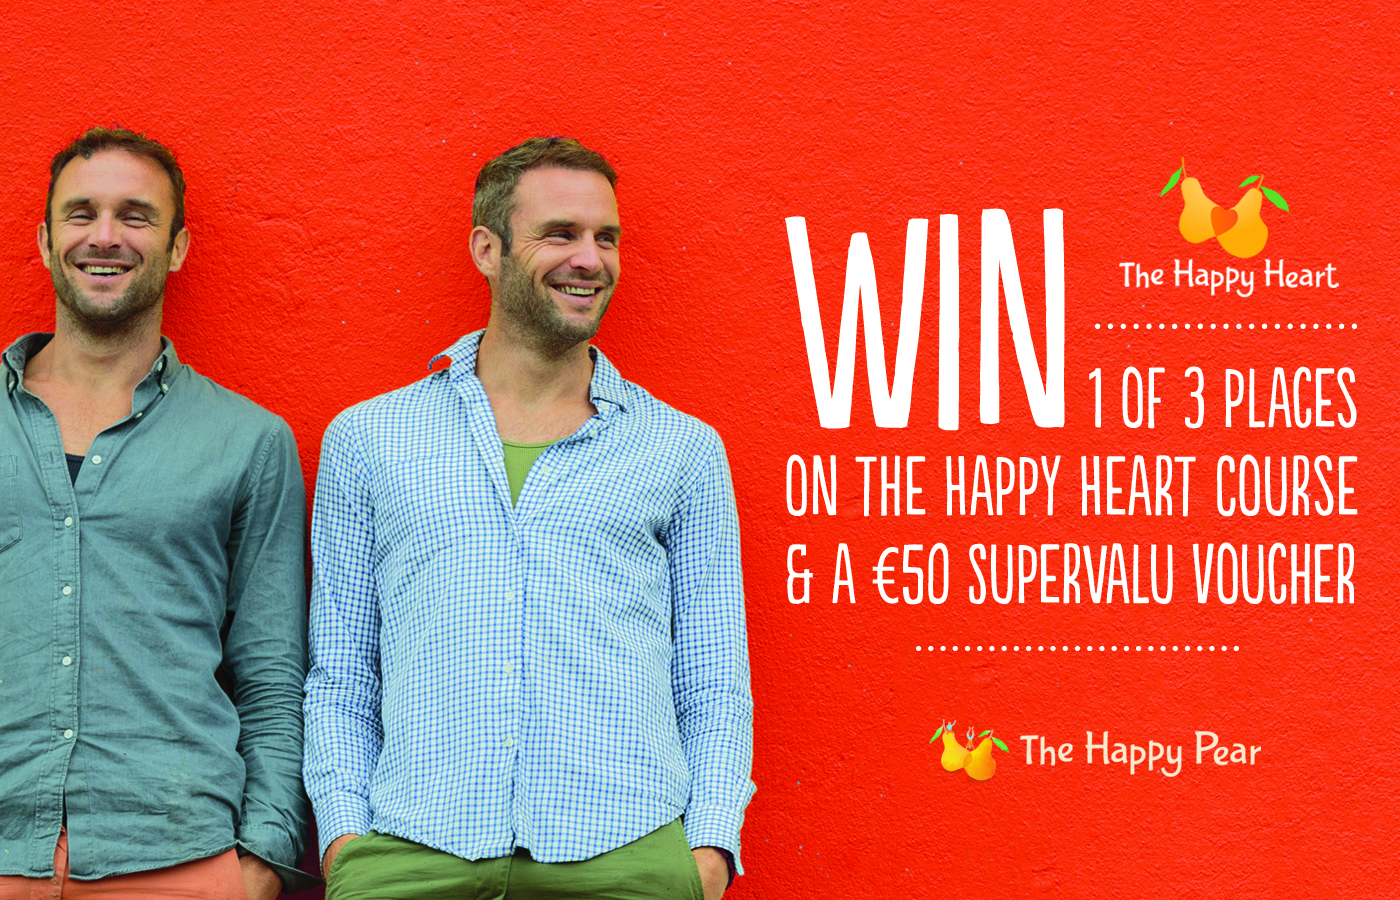 Win a place on The Happy Heart Course with The Happy Pear